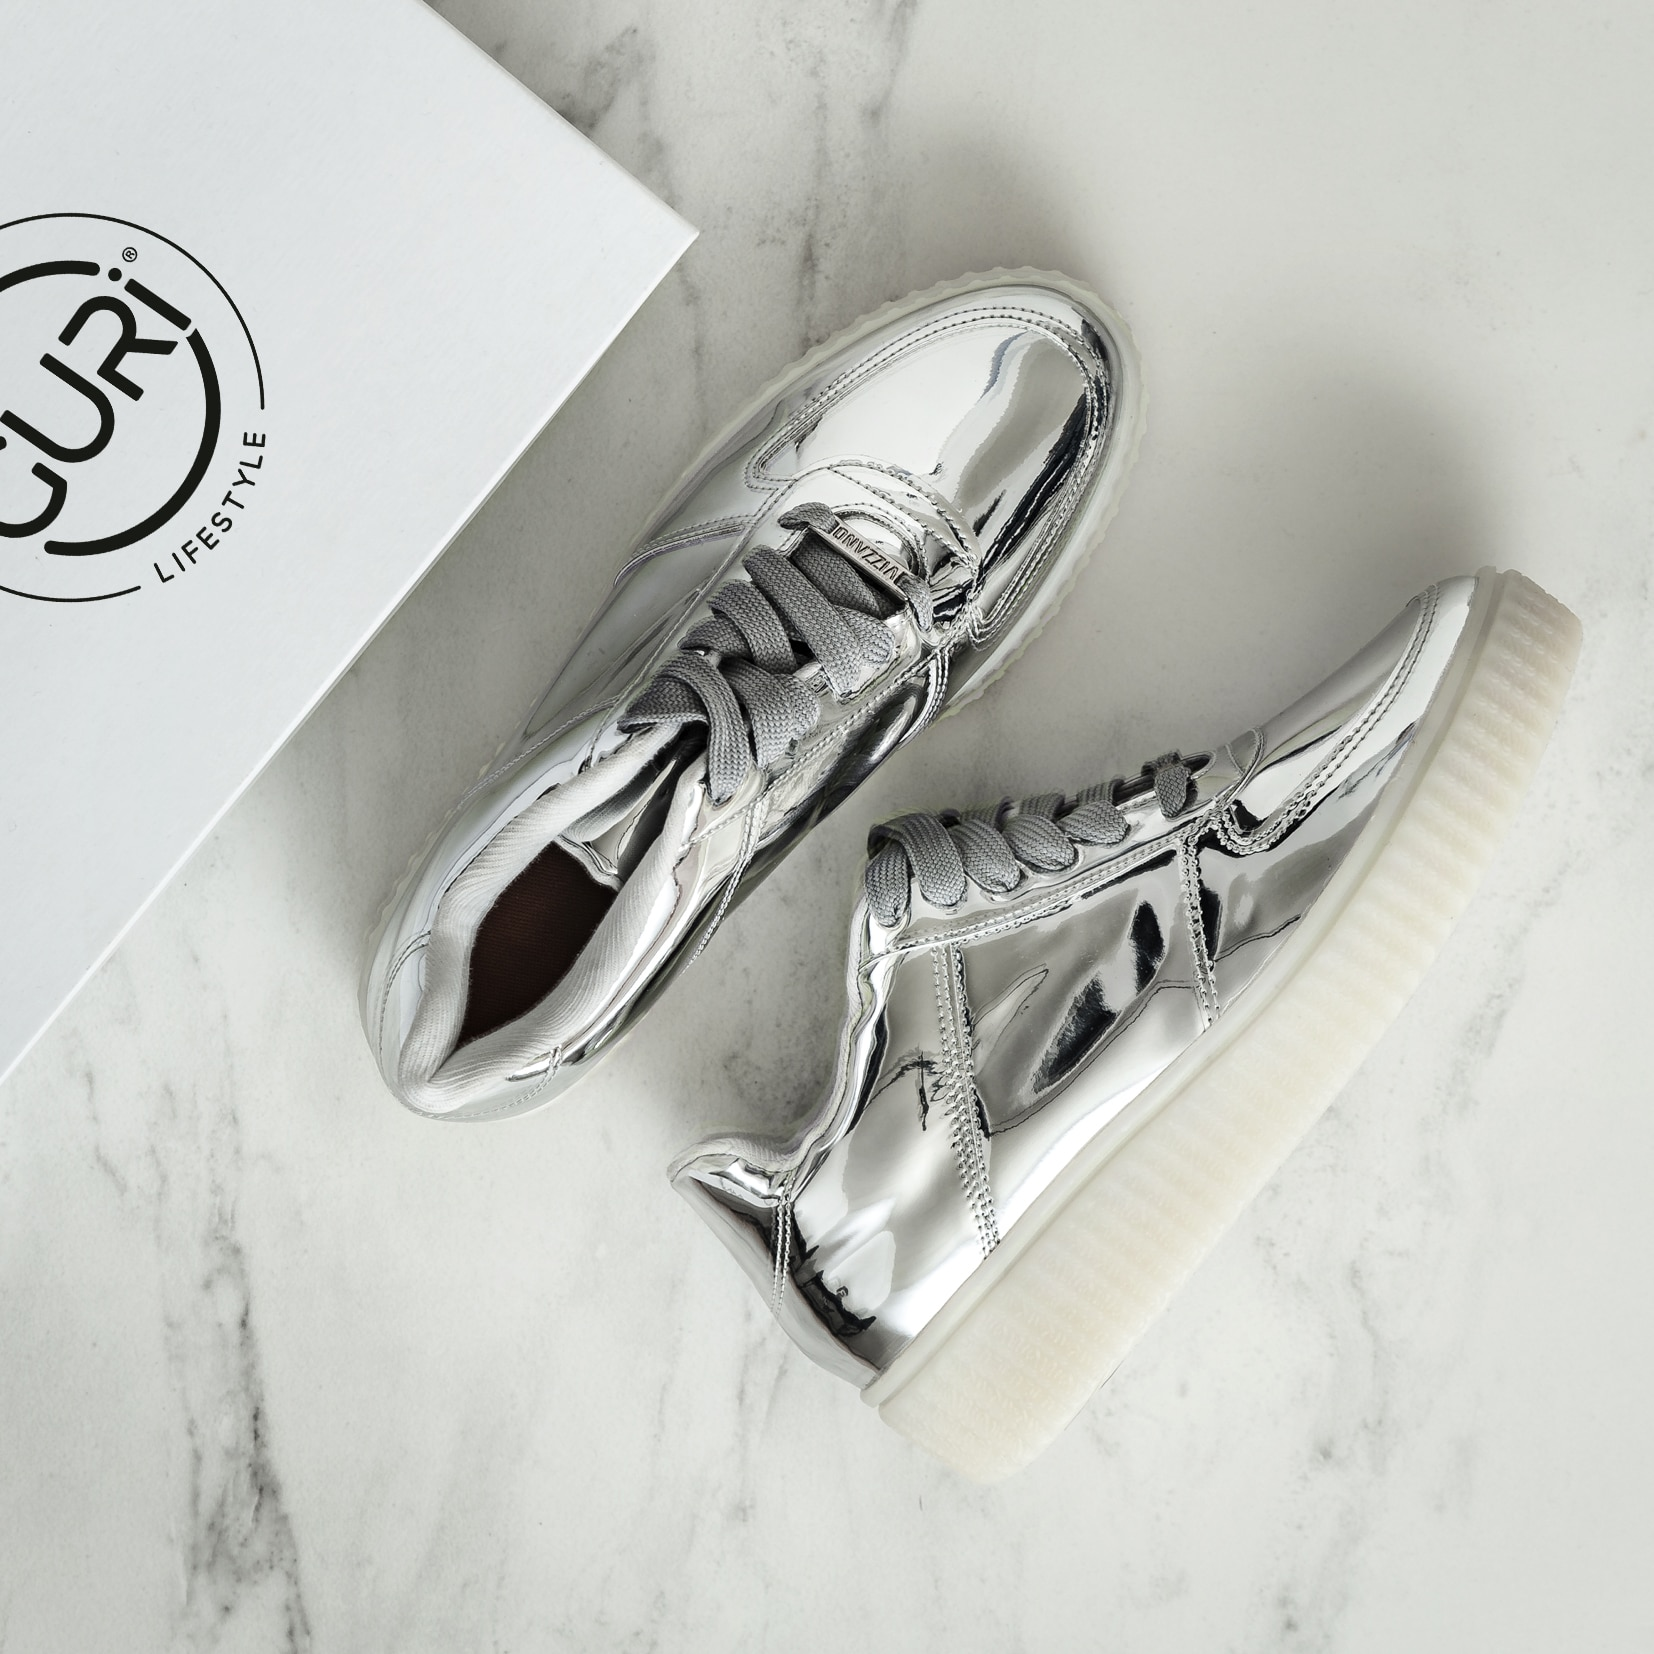 Alternative image of the space grey shoes for women.